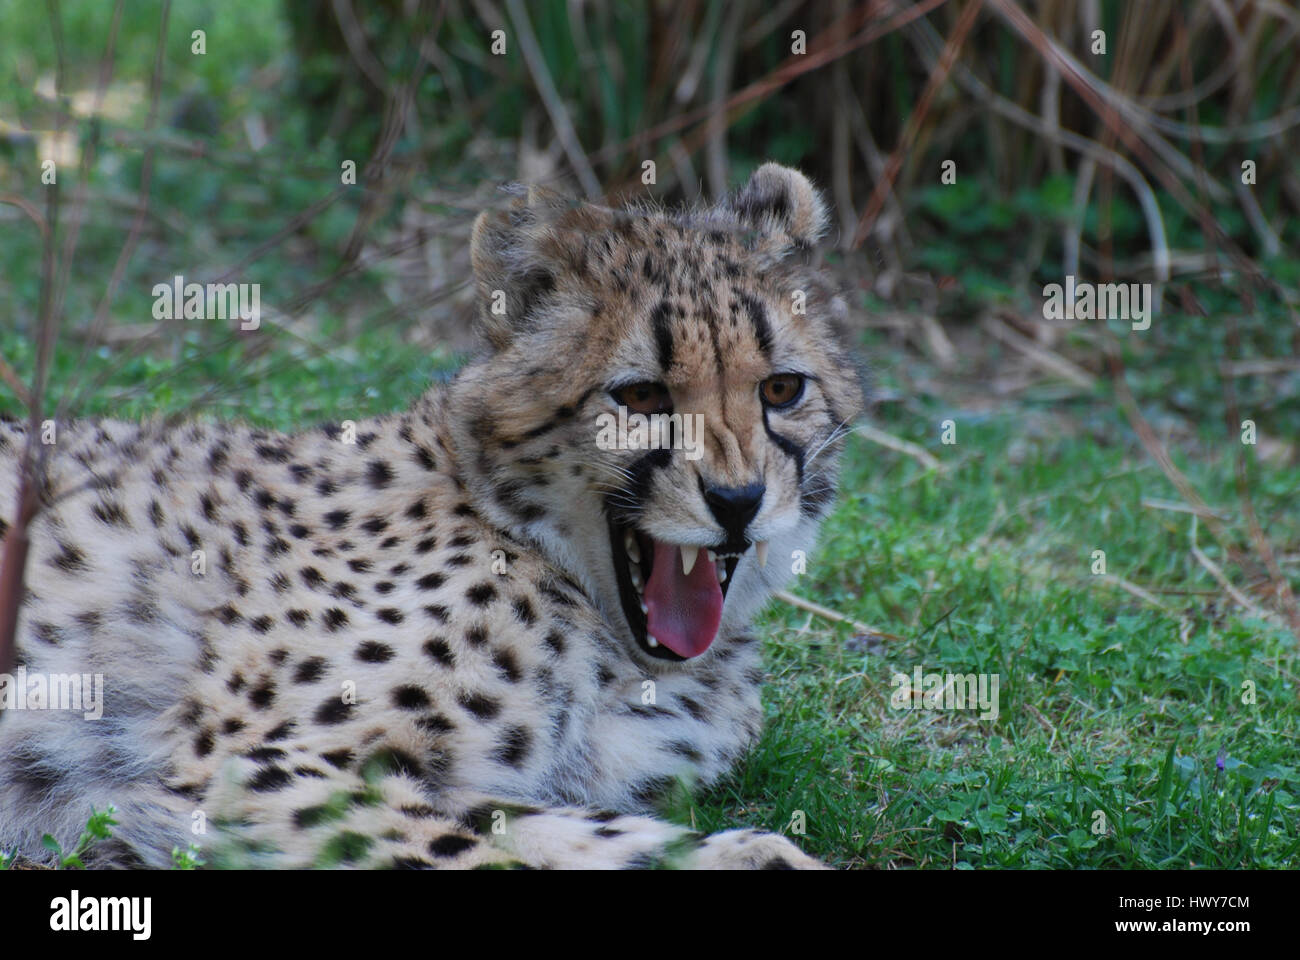 Cheetah with sharp teeth snarling with his mouth open. - Stock Image